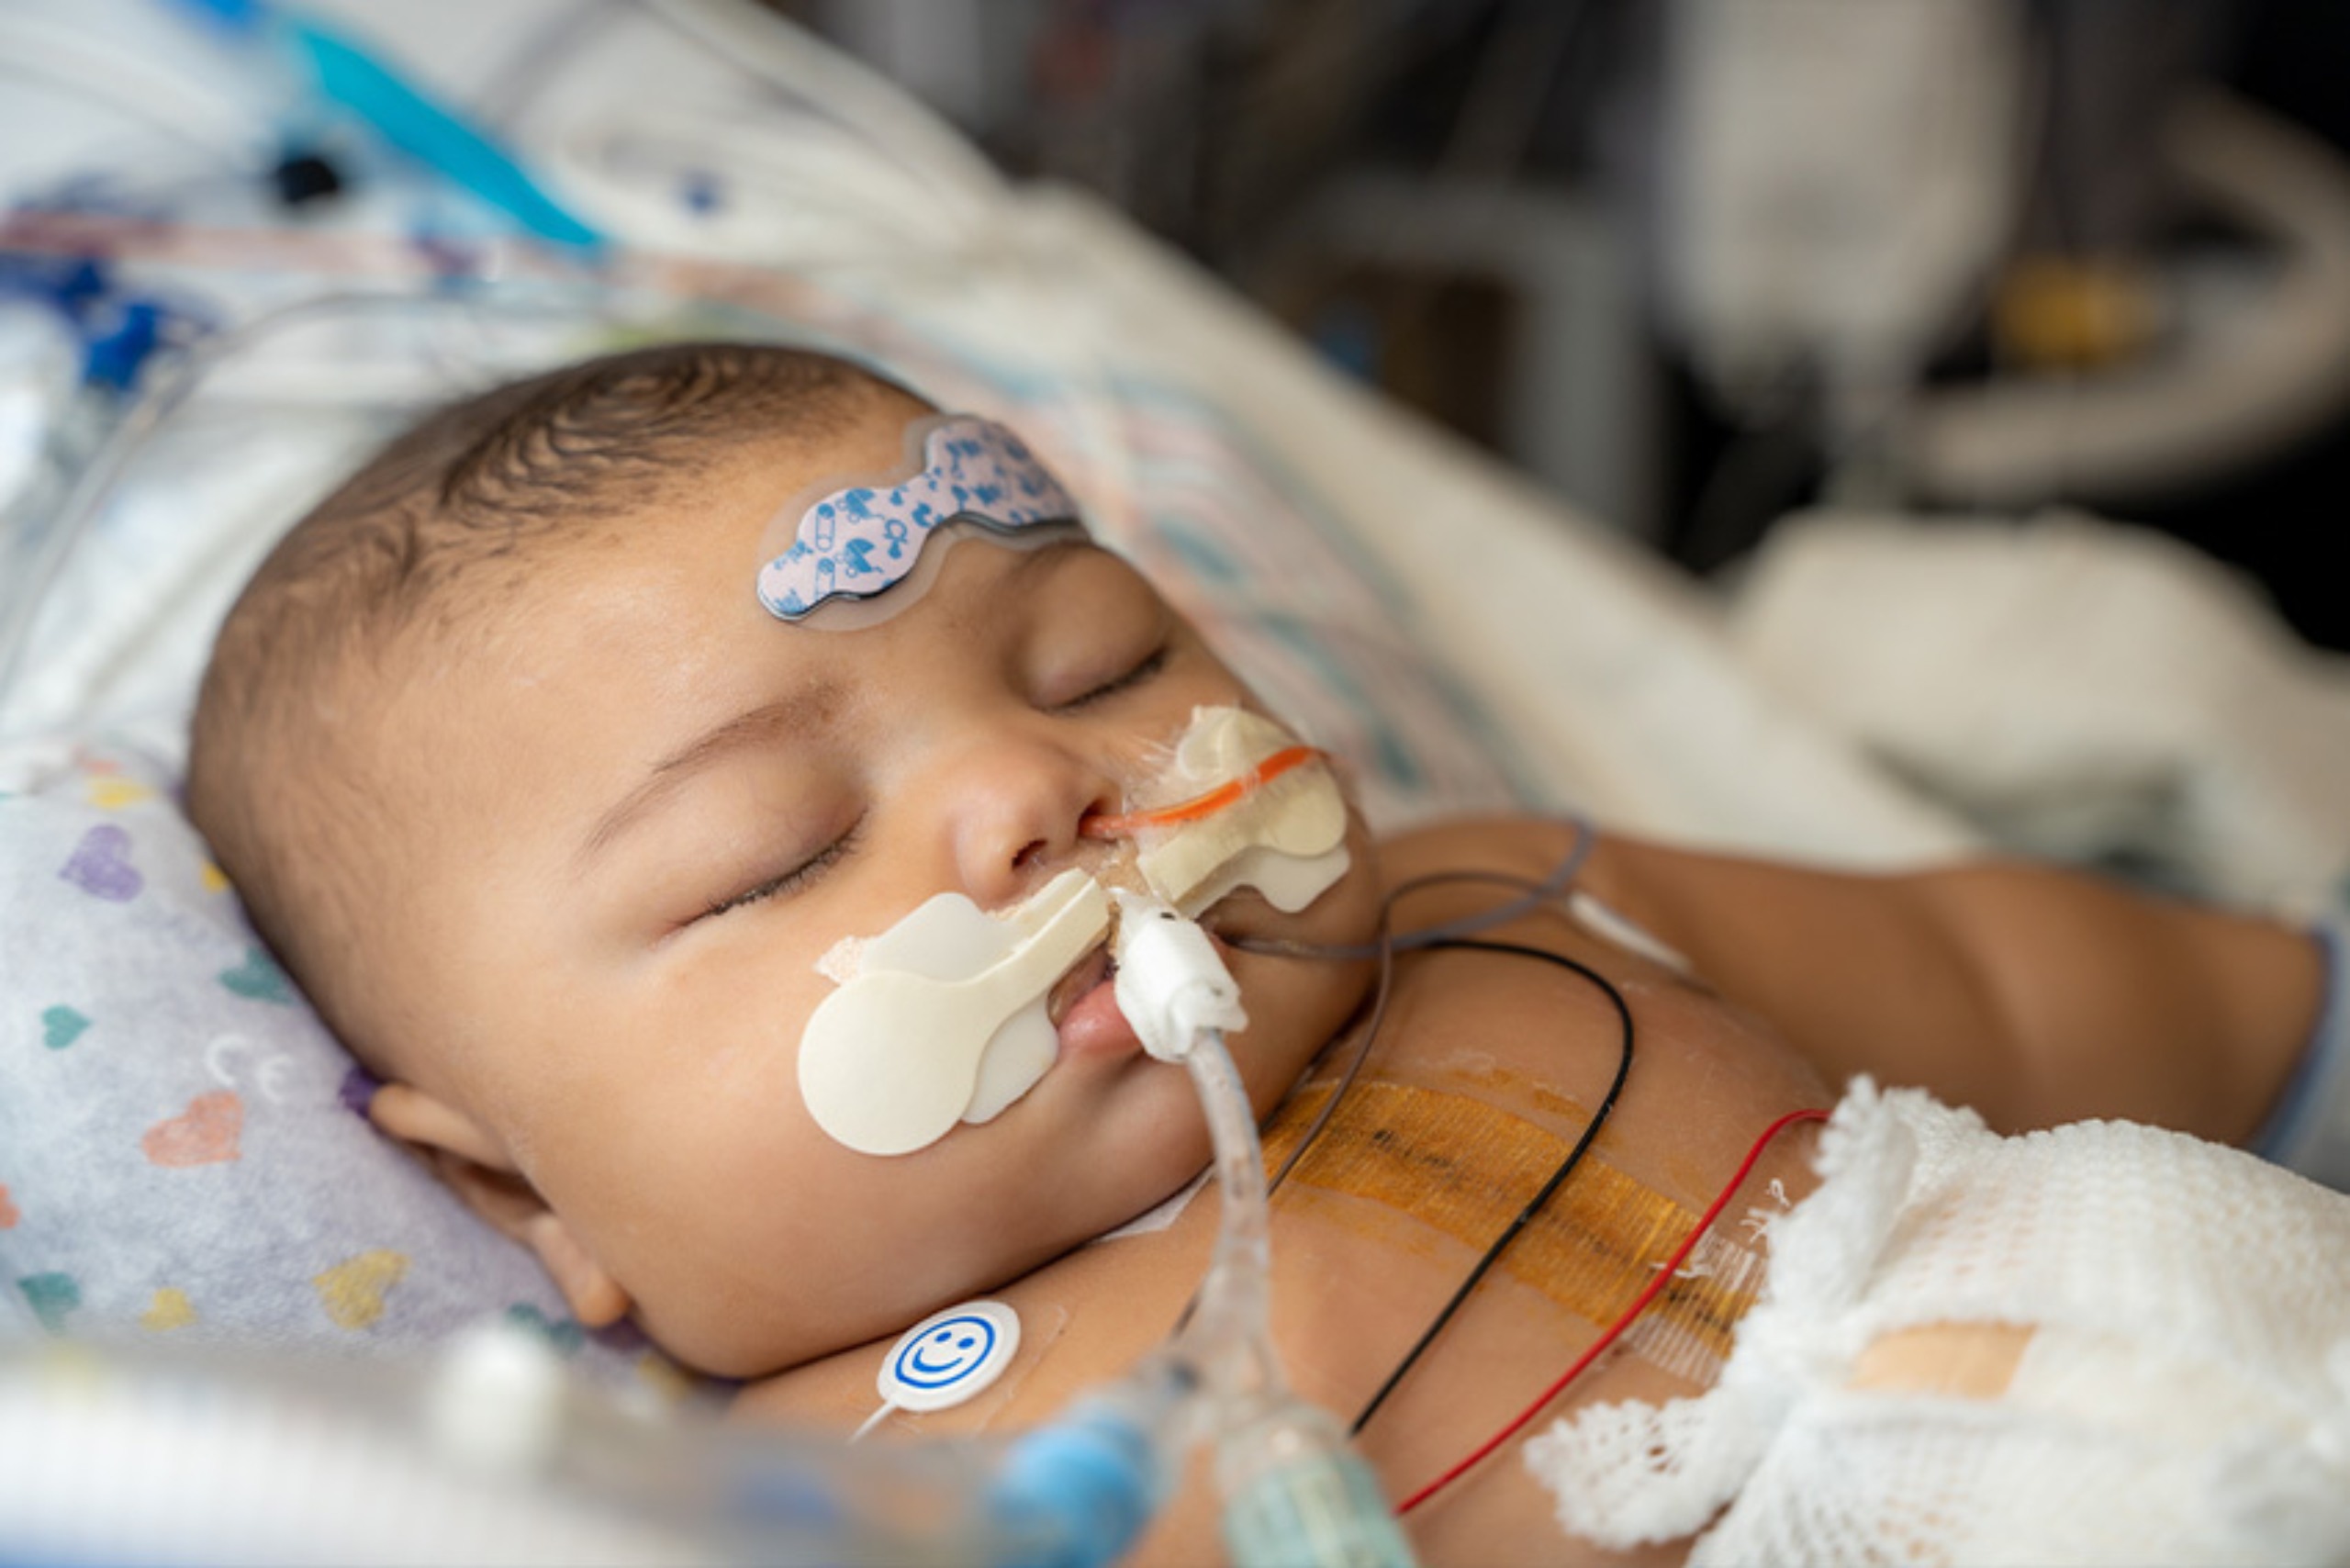 Baby in recovery hooked to machines